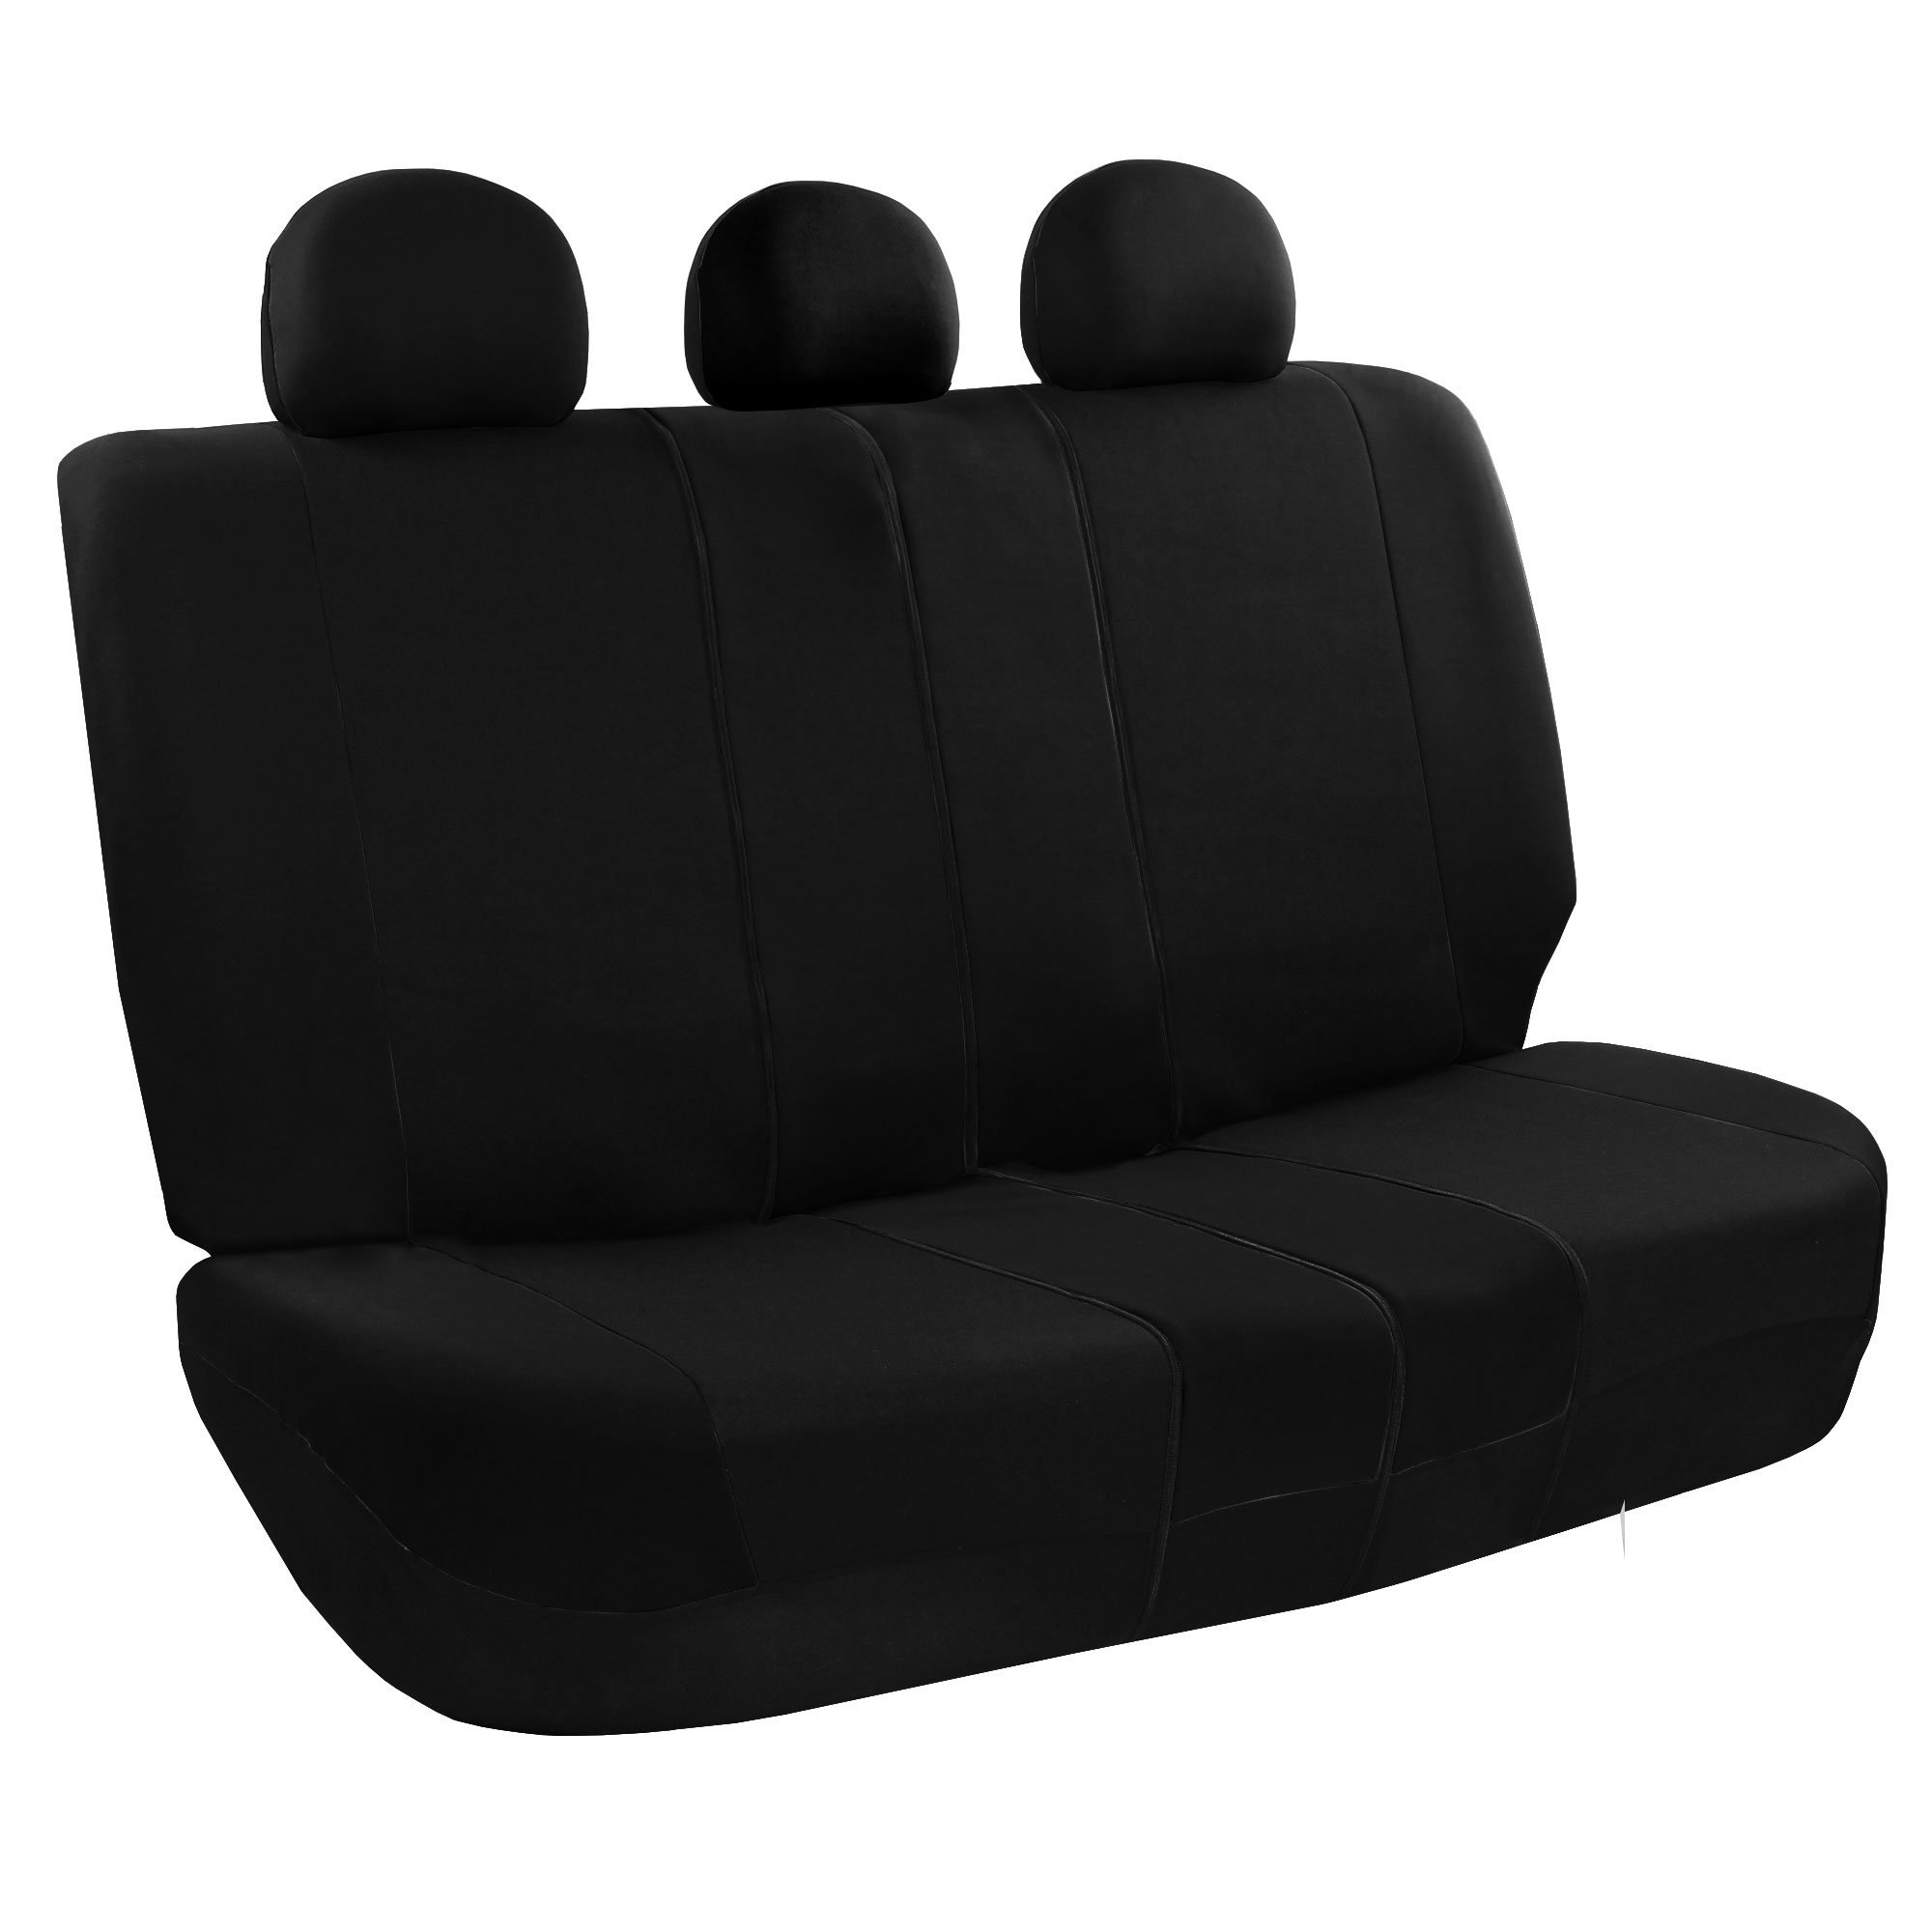 Car Seat Cover For Cars Full Set Black